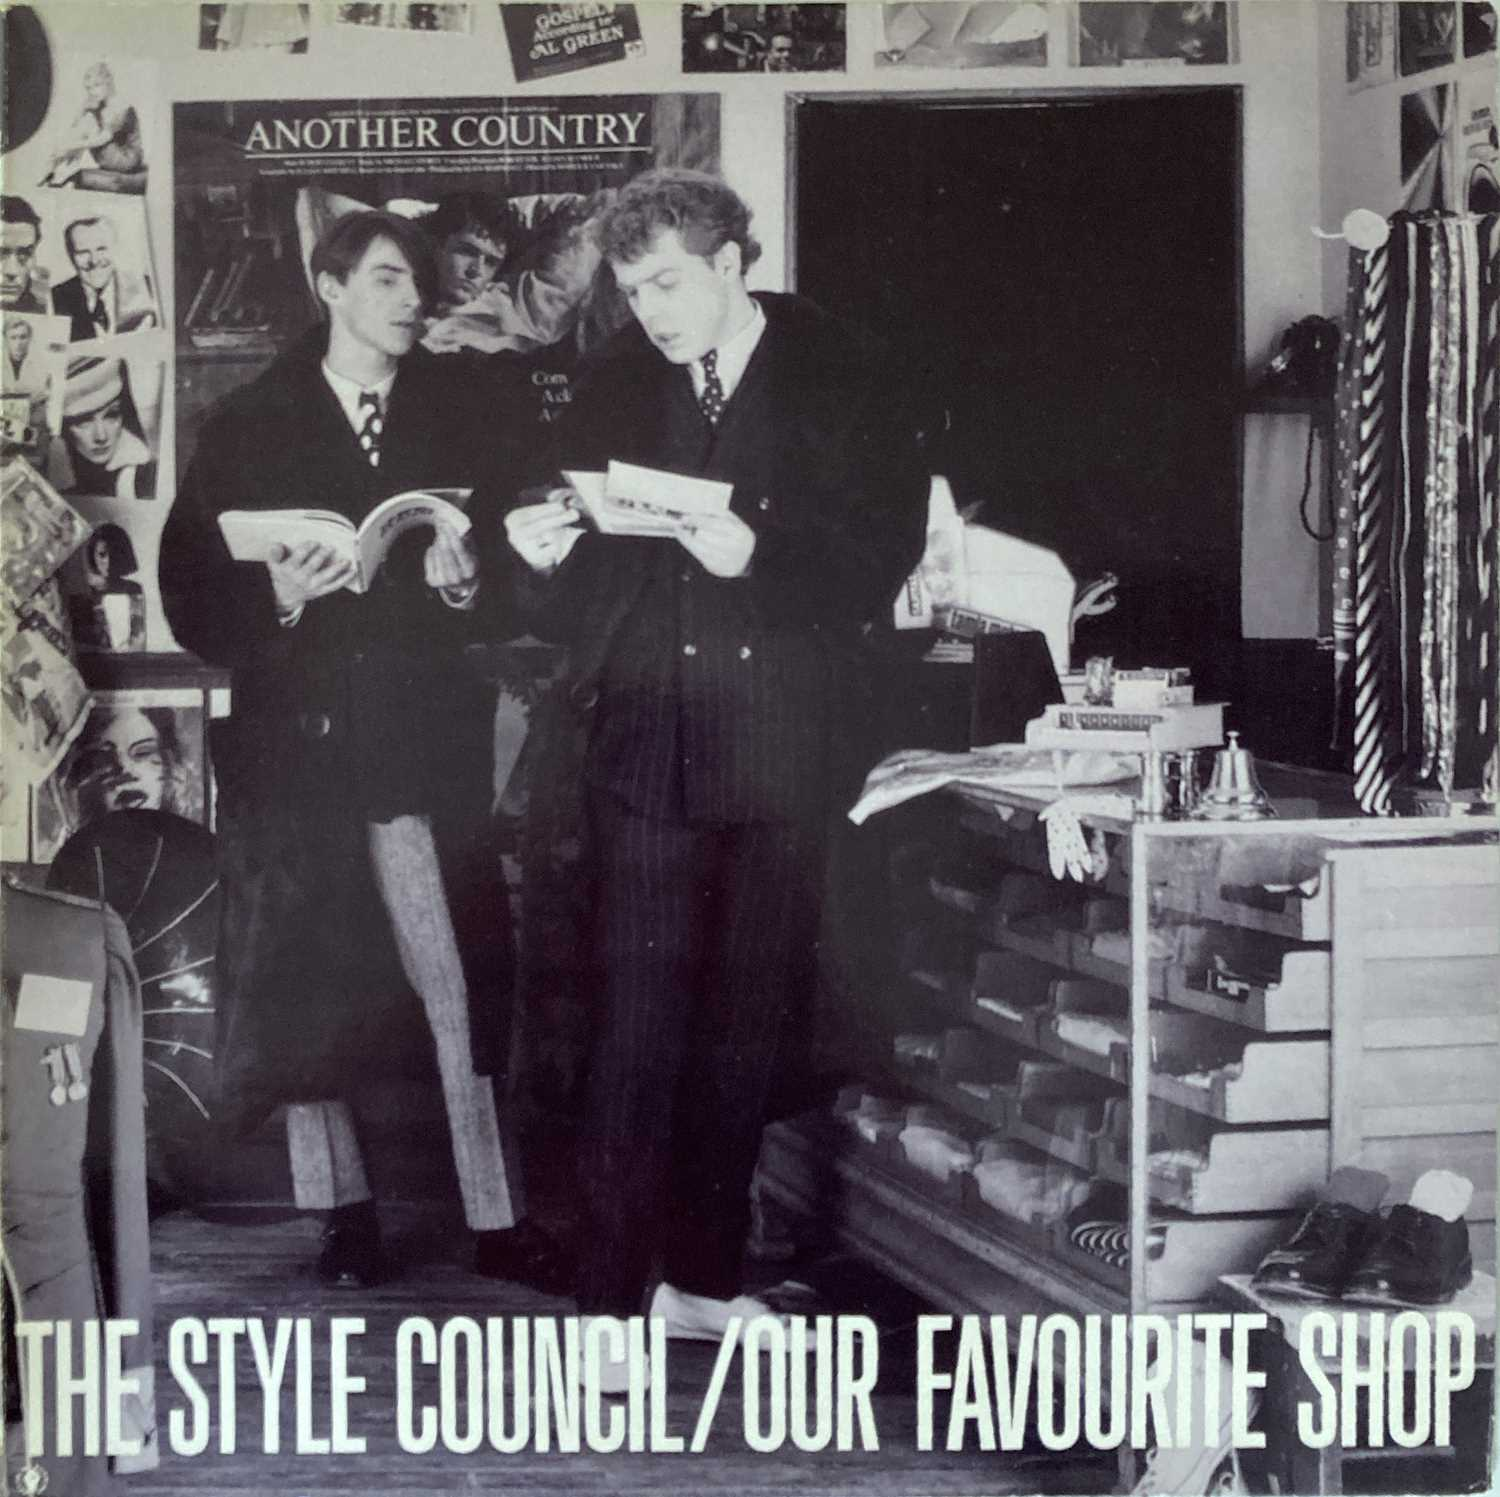 THE STYLE COUNCIL - SIGNED LPS. - Image 5 of 8